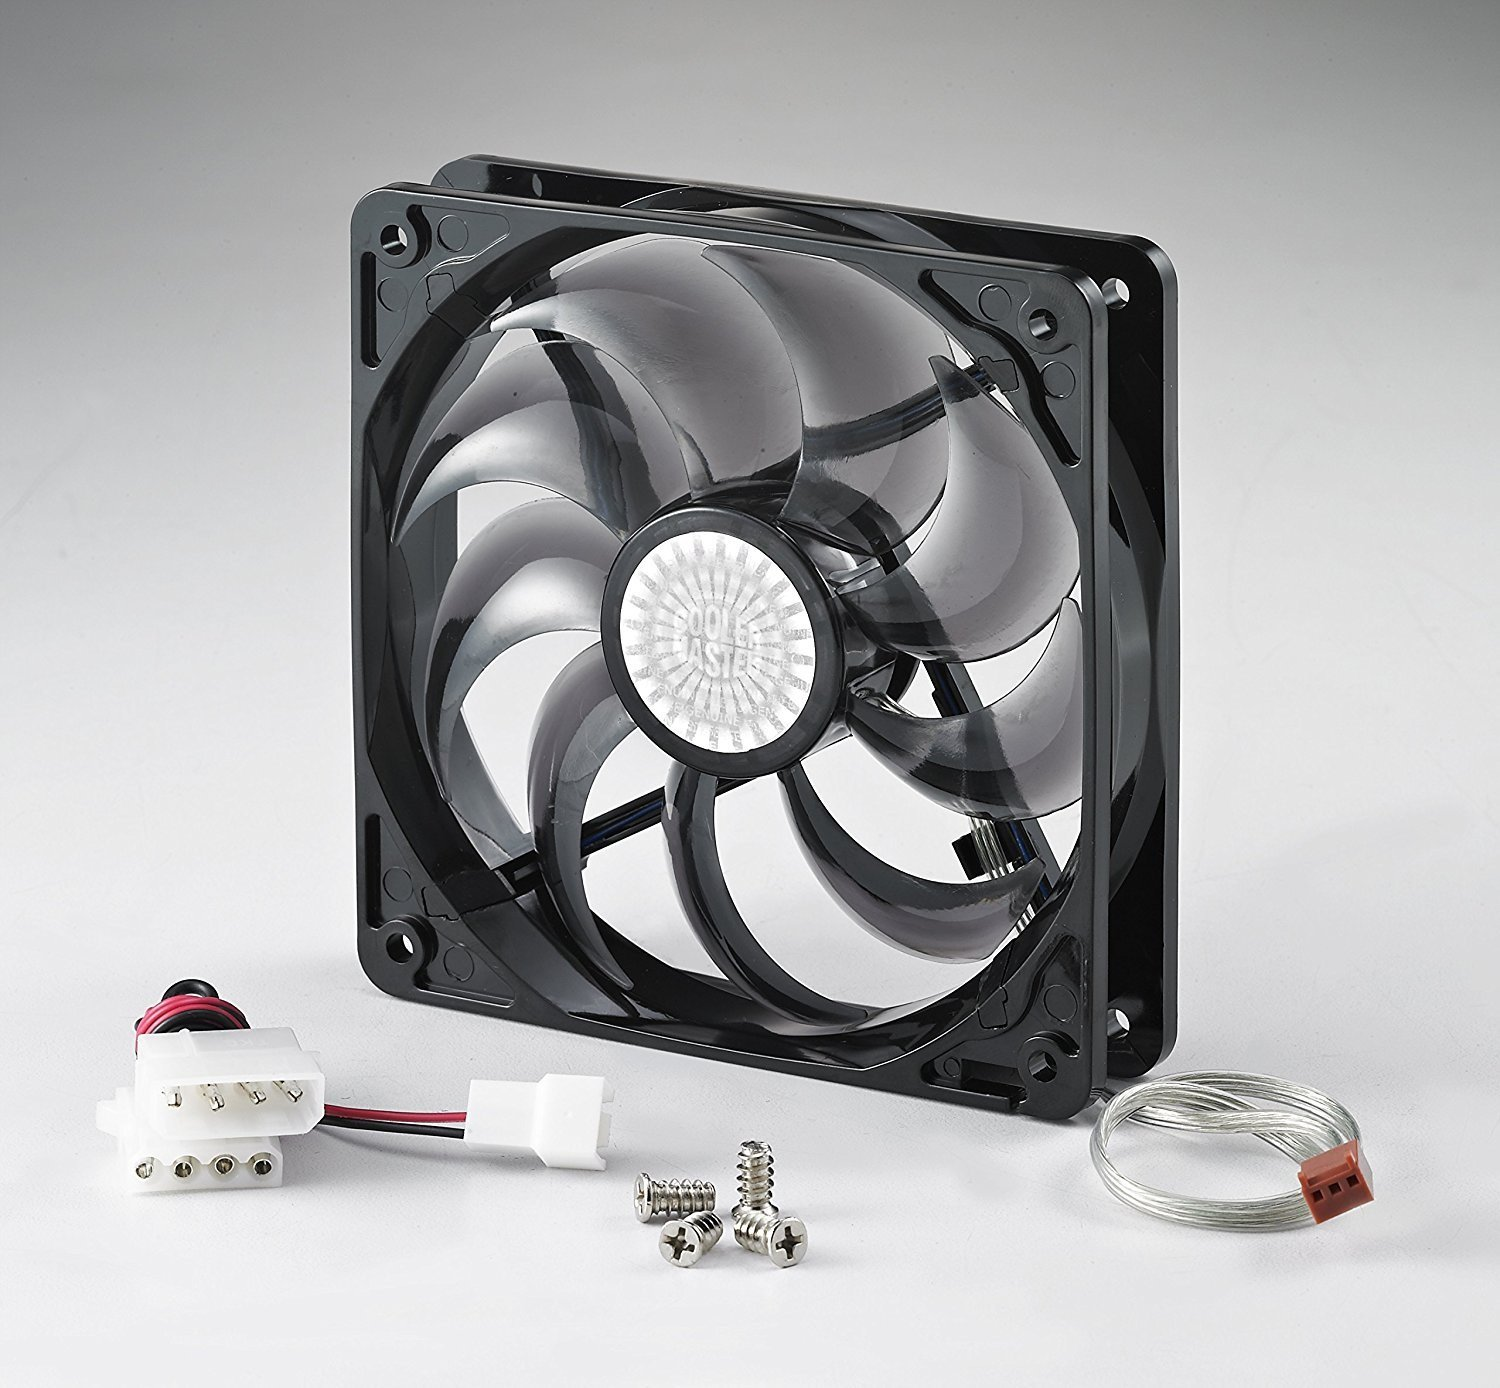 cooler-master-sickleflow-120-green-led-fan